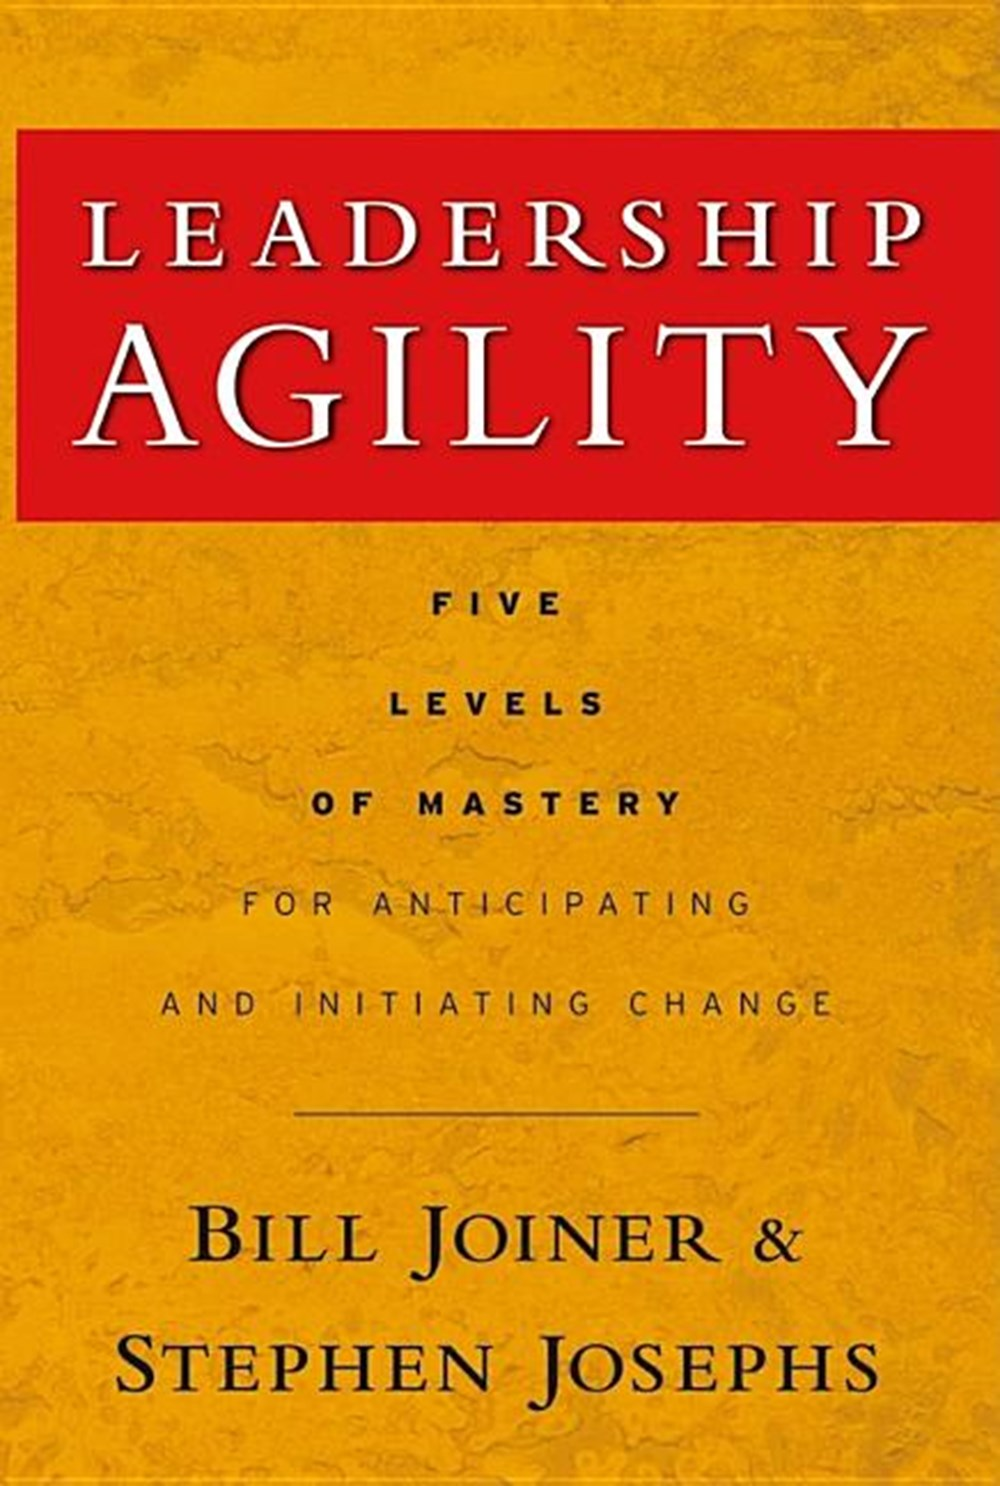 Leadership Agility Five Levels of Mastery for Anticipating and Initiating Change